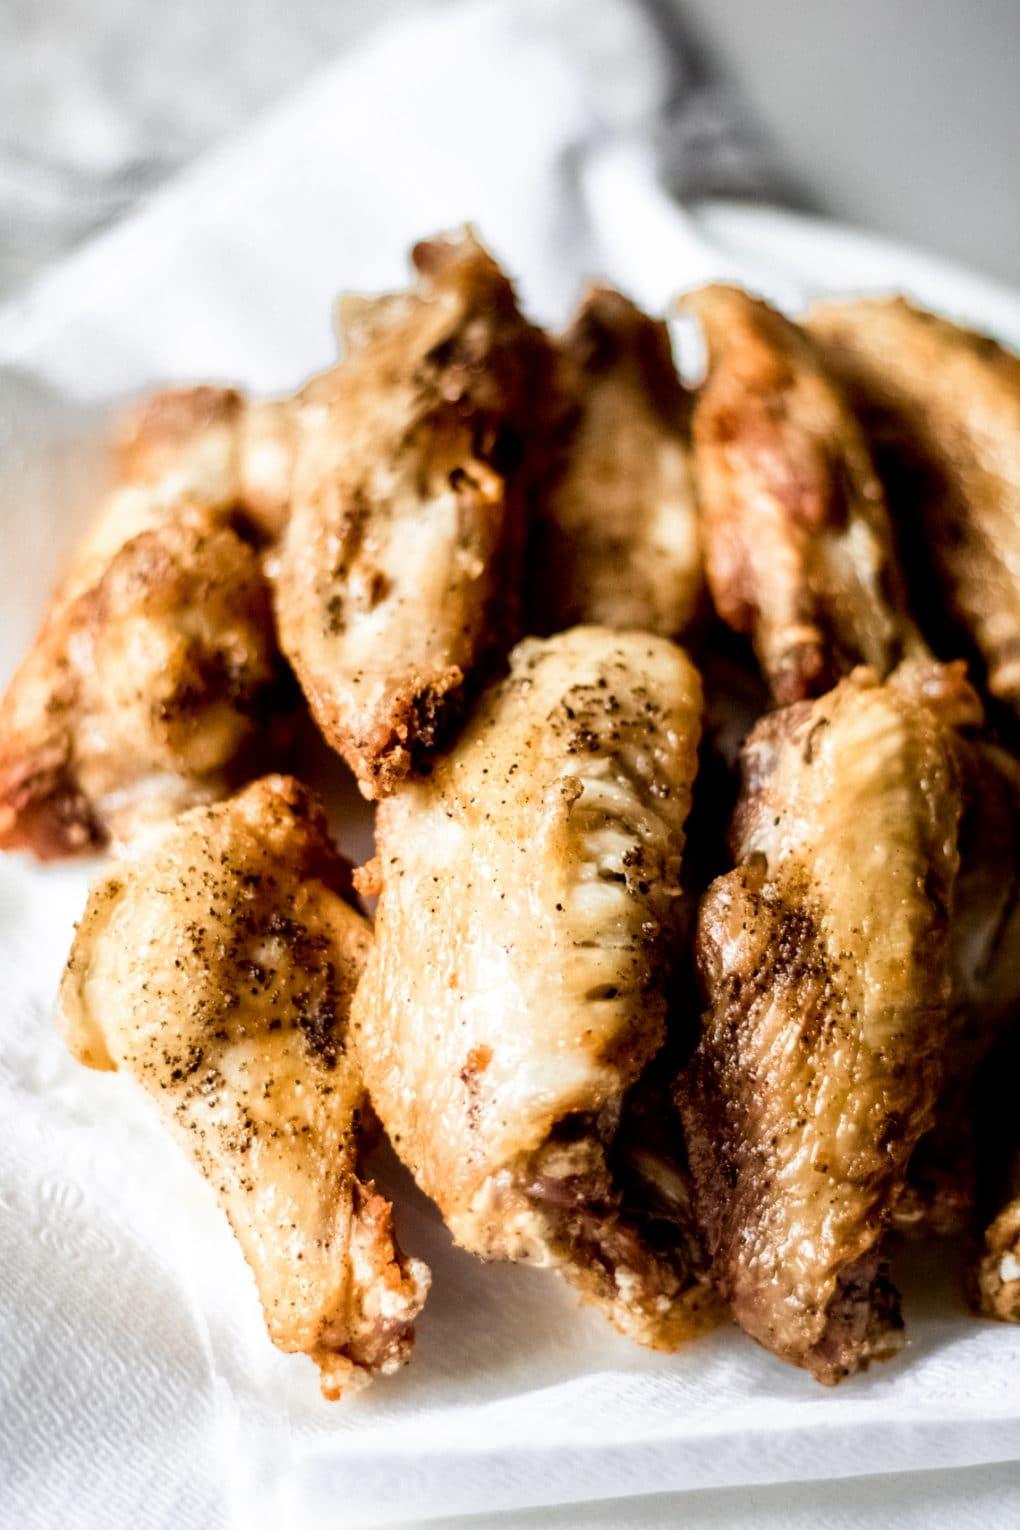 a plate of cooked chicken wings with no sauce